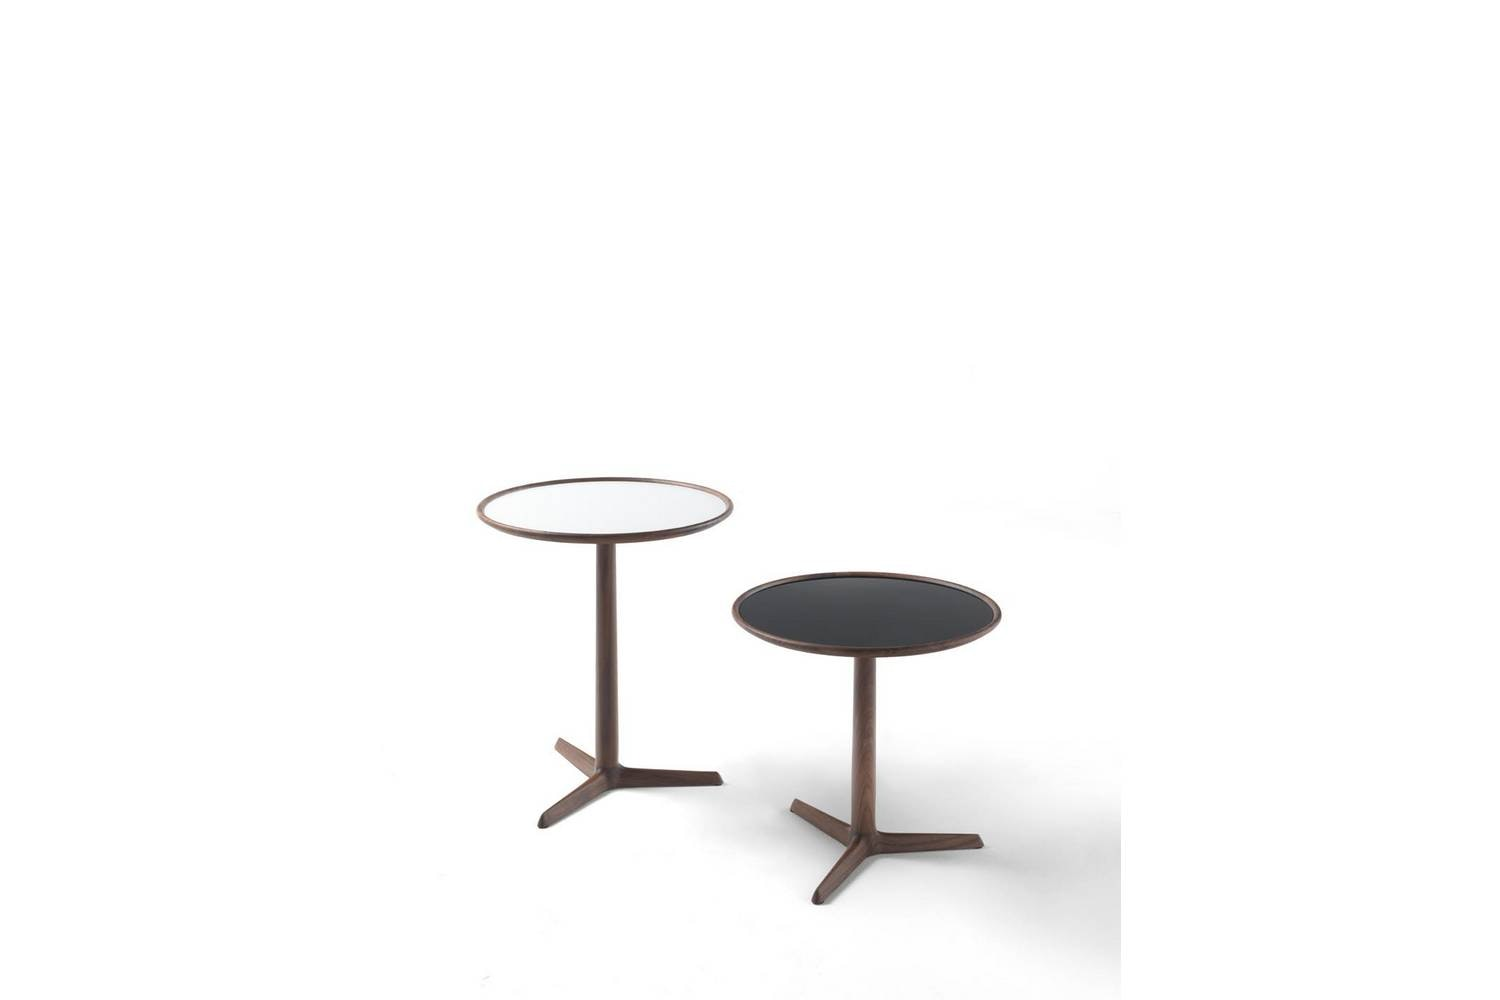 Pausa Side Table by T. Colzani for Porada